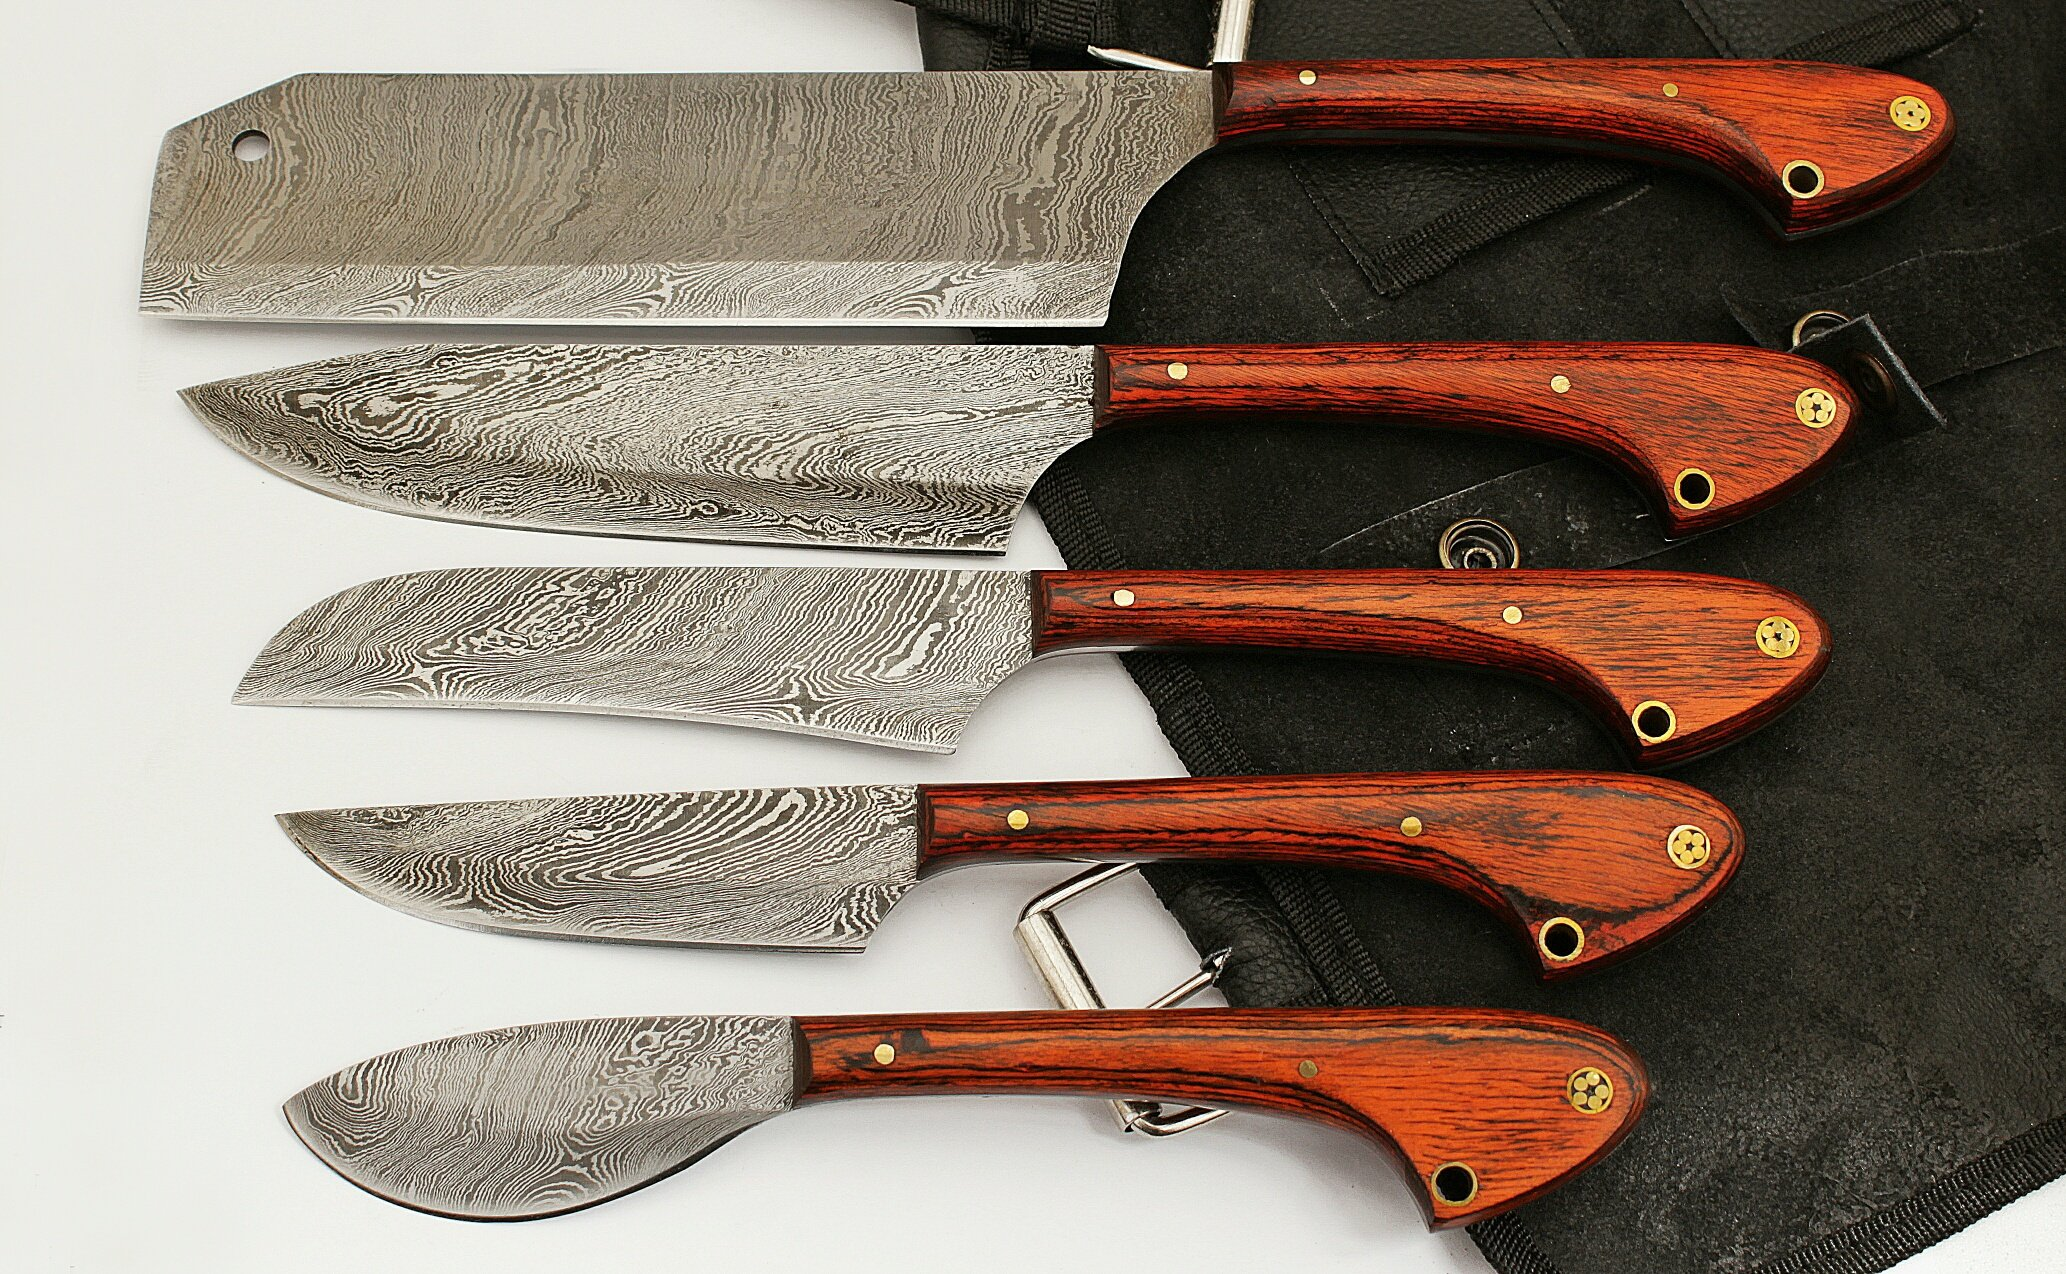 Custom Made Damascus Steel 5 pcs Professional Kitchen Chef Knife Set with 5 Pocket Case Chef Knife Roll Bag by GladiatorsGuild 1033 (Red)